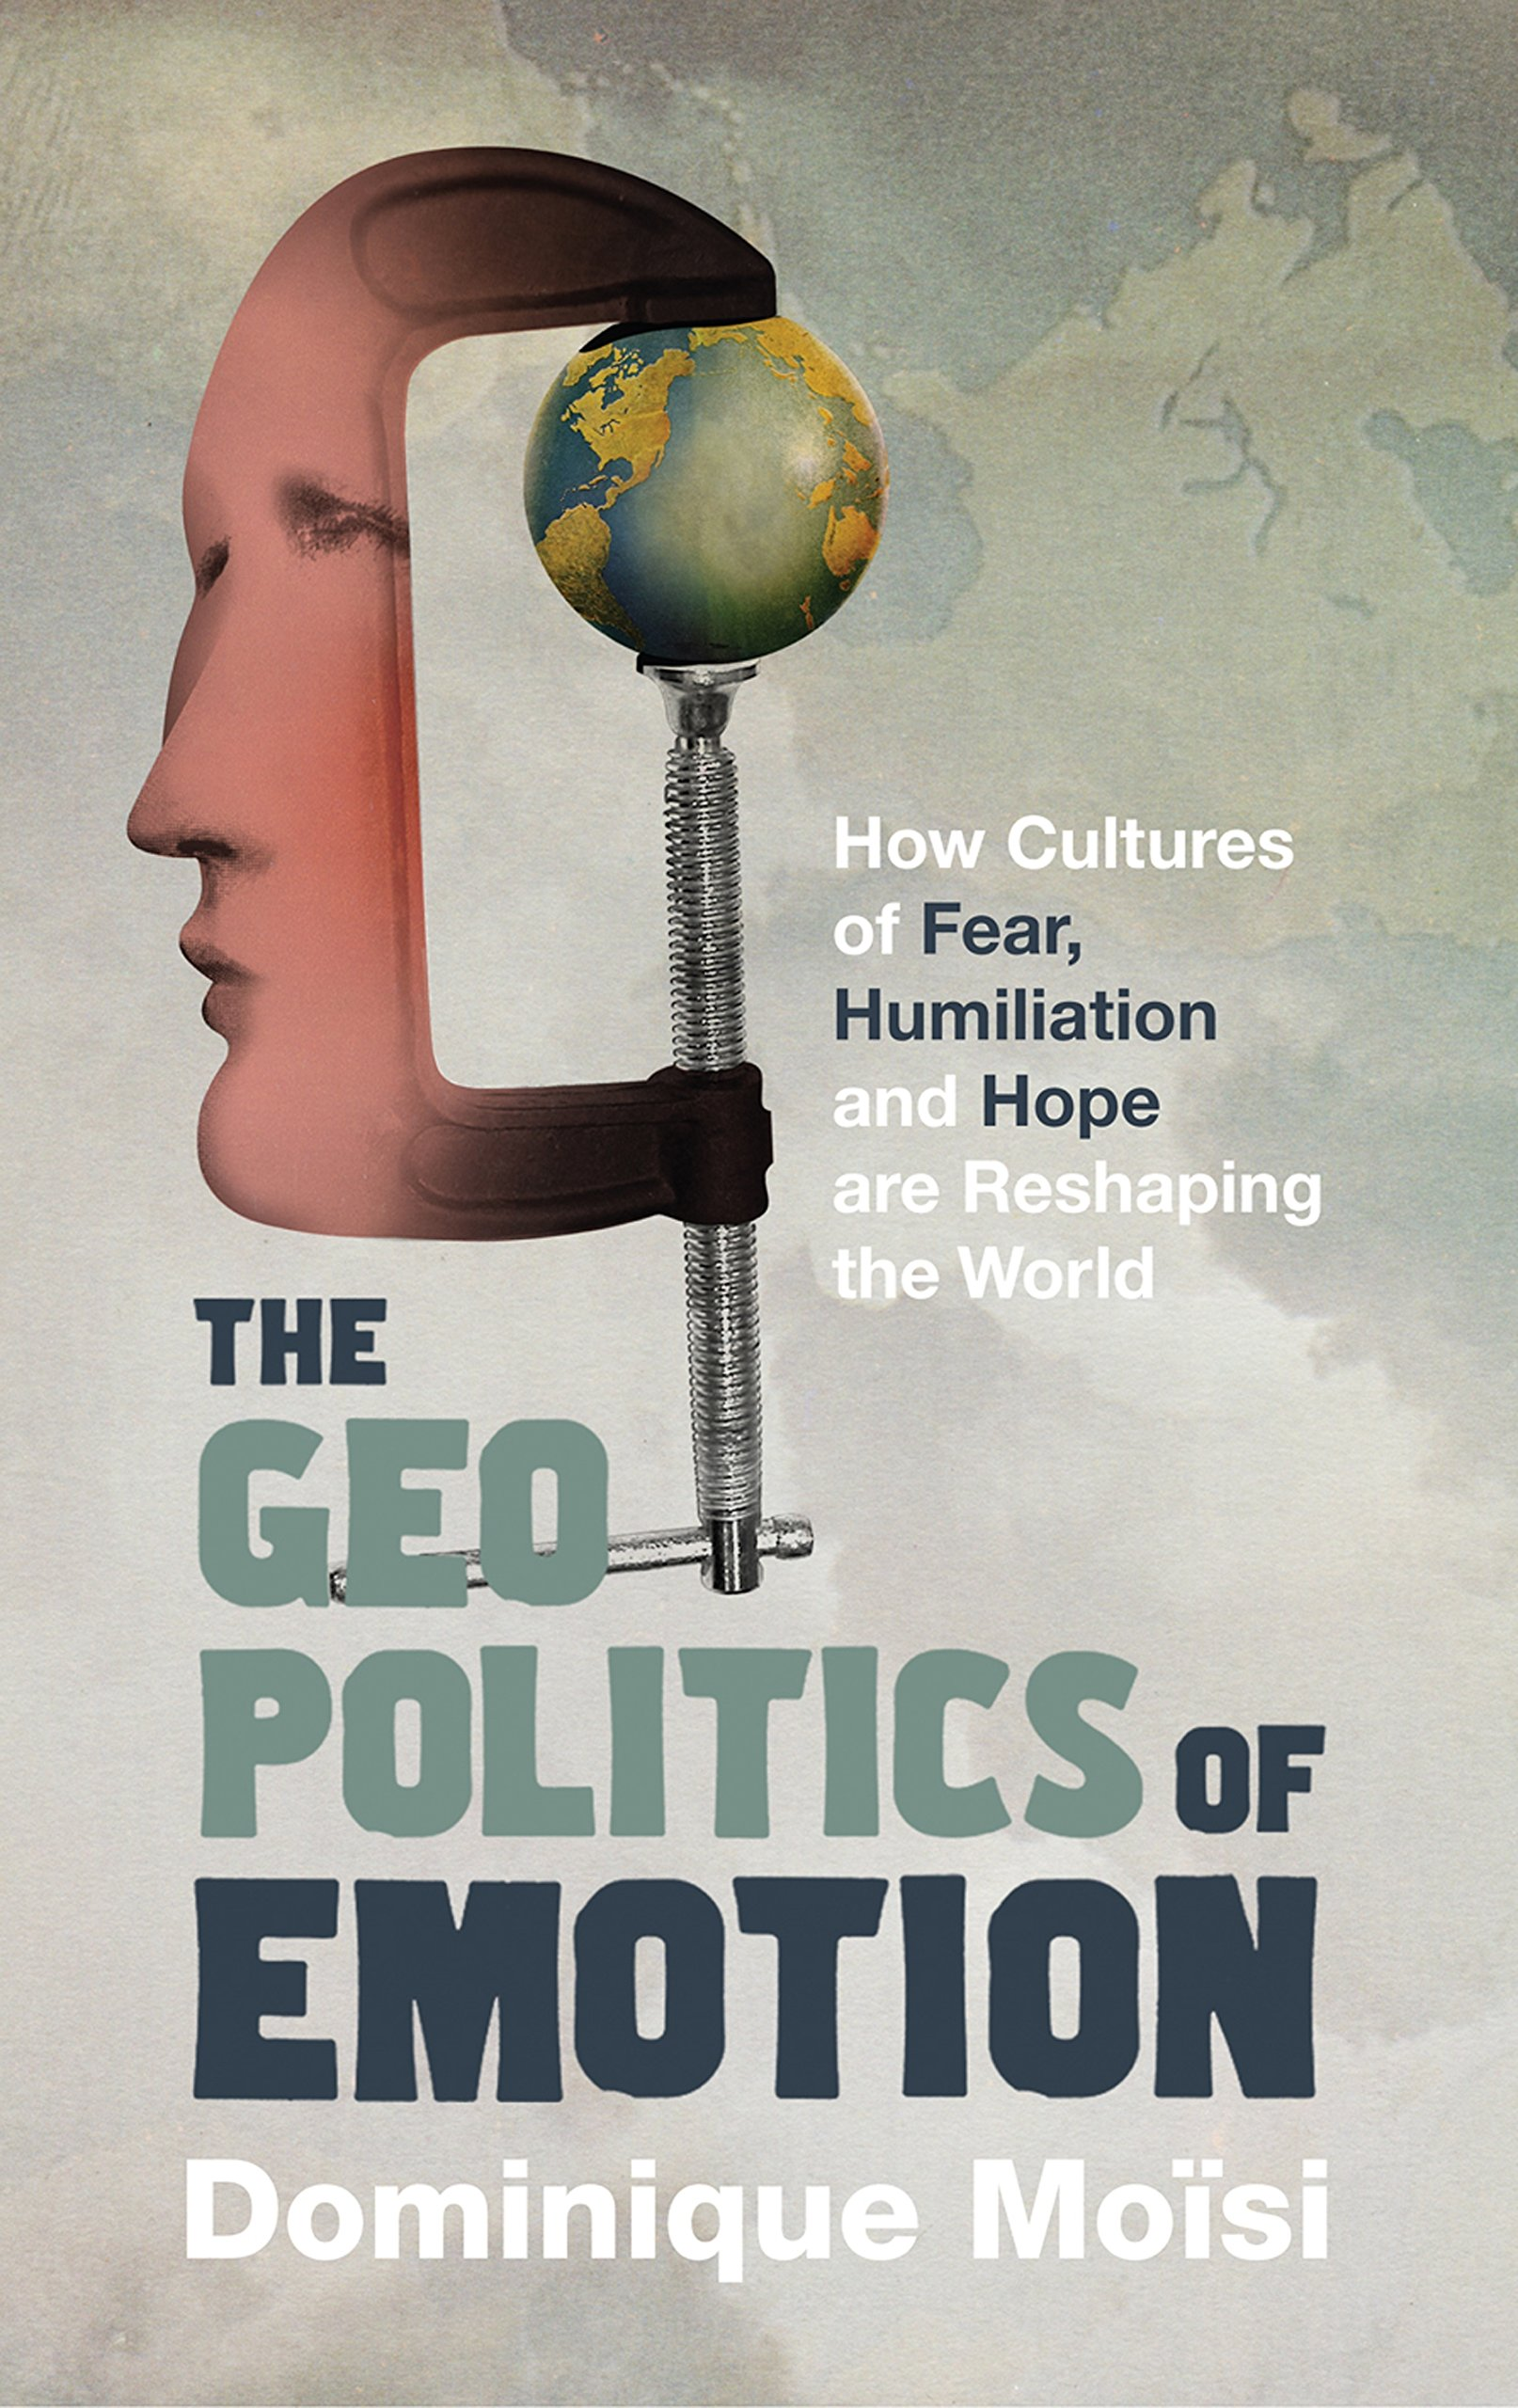 The Geopolitics of Emotion: How Cultures of Fear, Humiliation and Hope Are Reshaping the World PDF